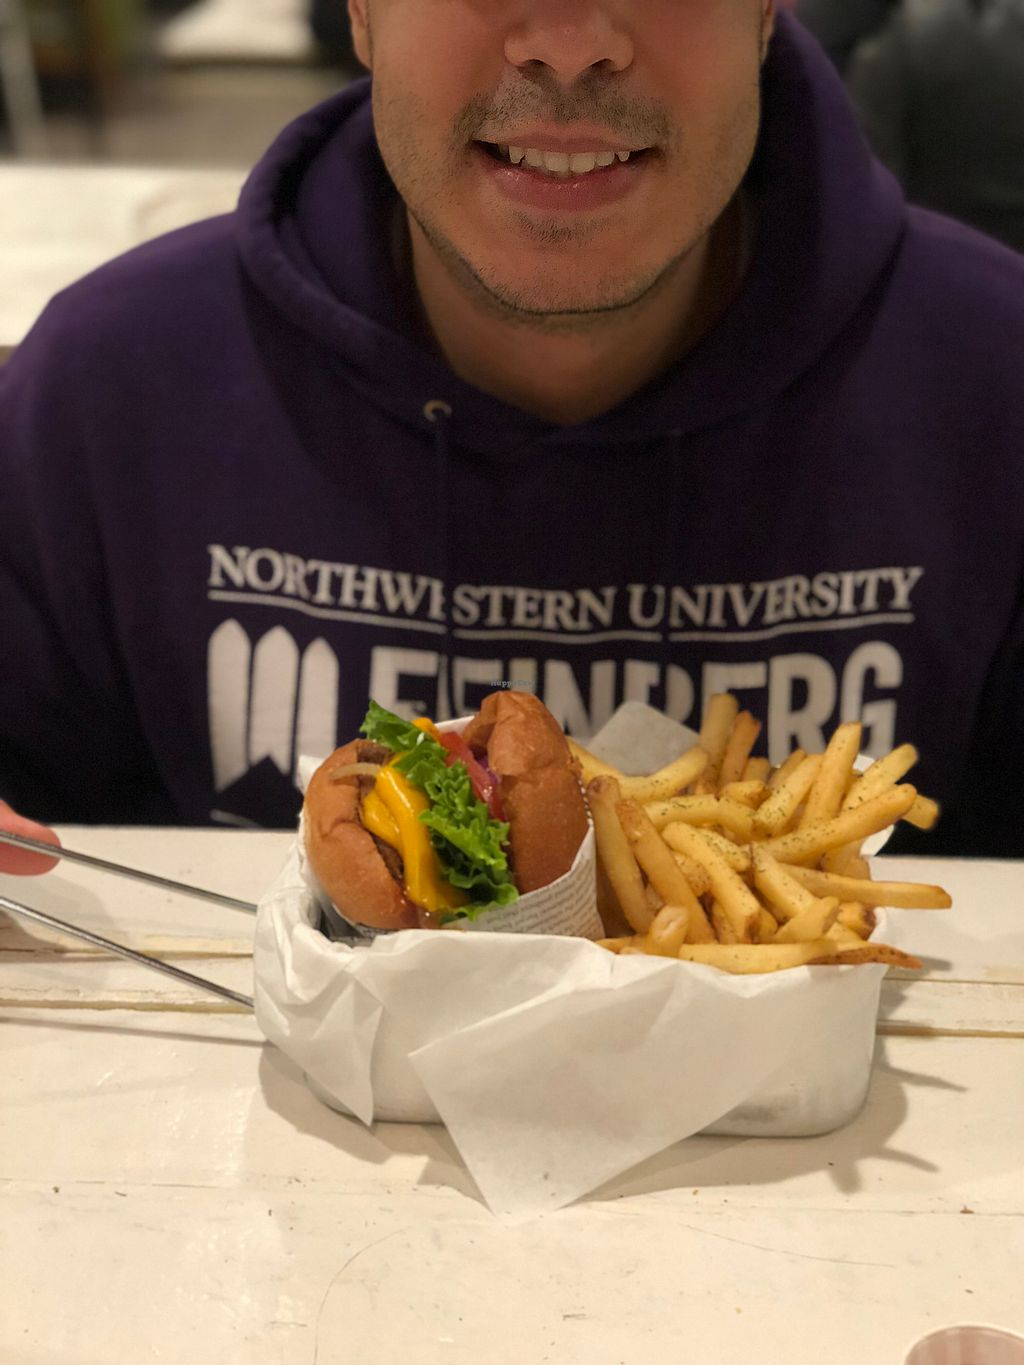 """Photo of VeganBurg  by <a href=""""/members/profile/BrittanyHowze"""">BrittanyHowze</a> <br/>Western bbq burger <br/> April 23, 2018  - <a href='/contact/abuse/image/63460/389679'>Report</a>"""